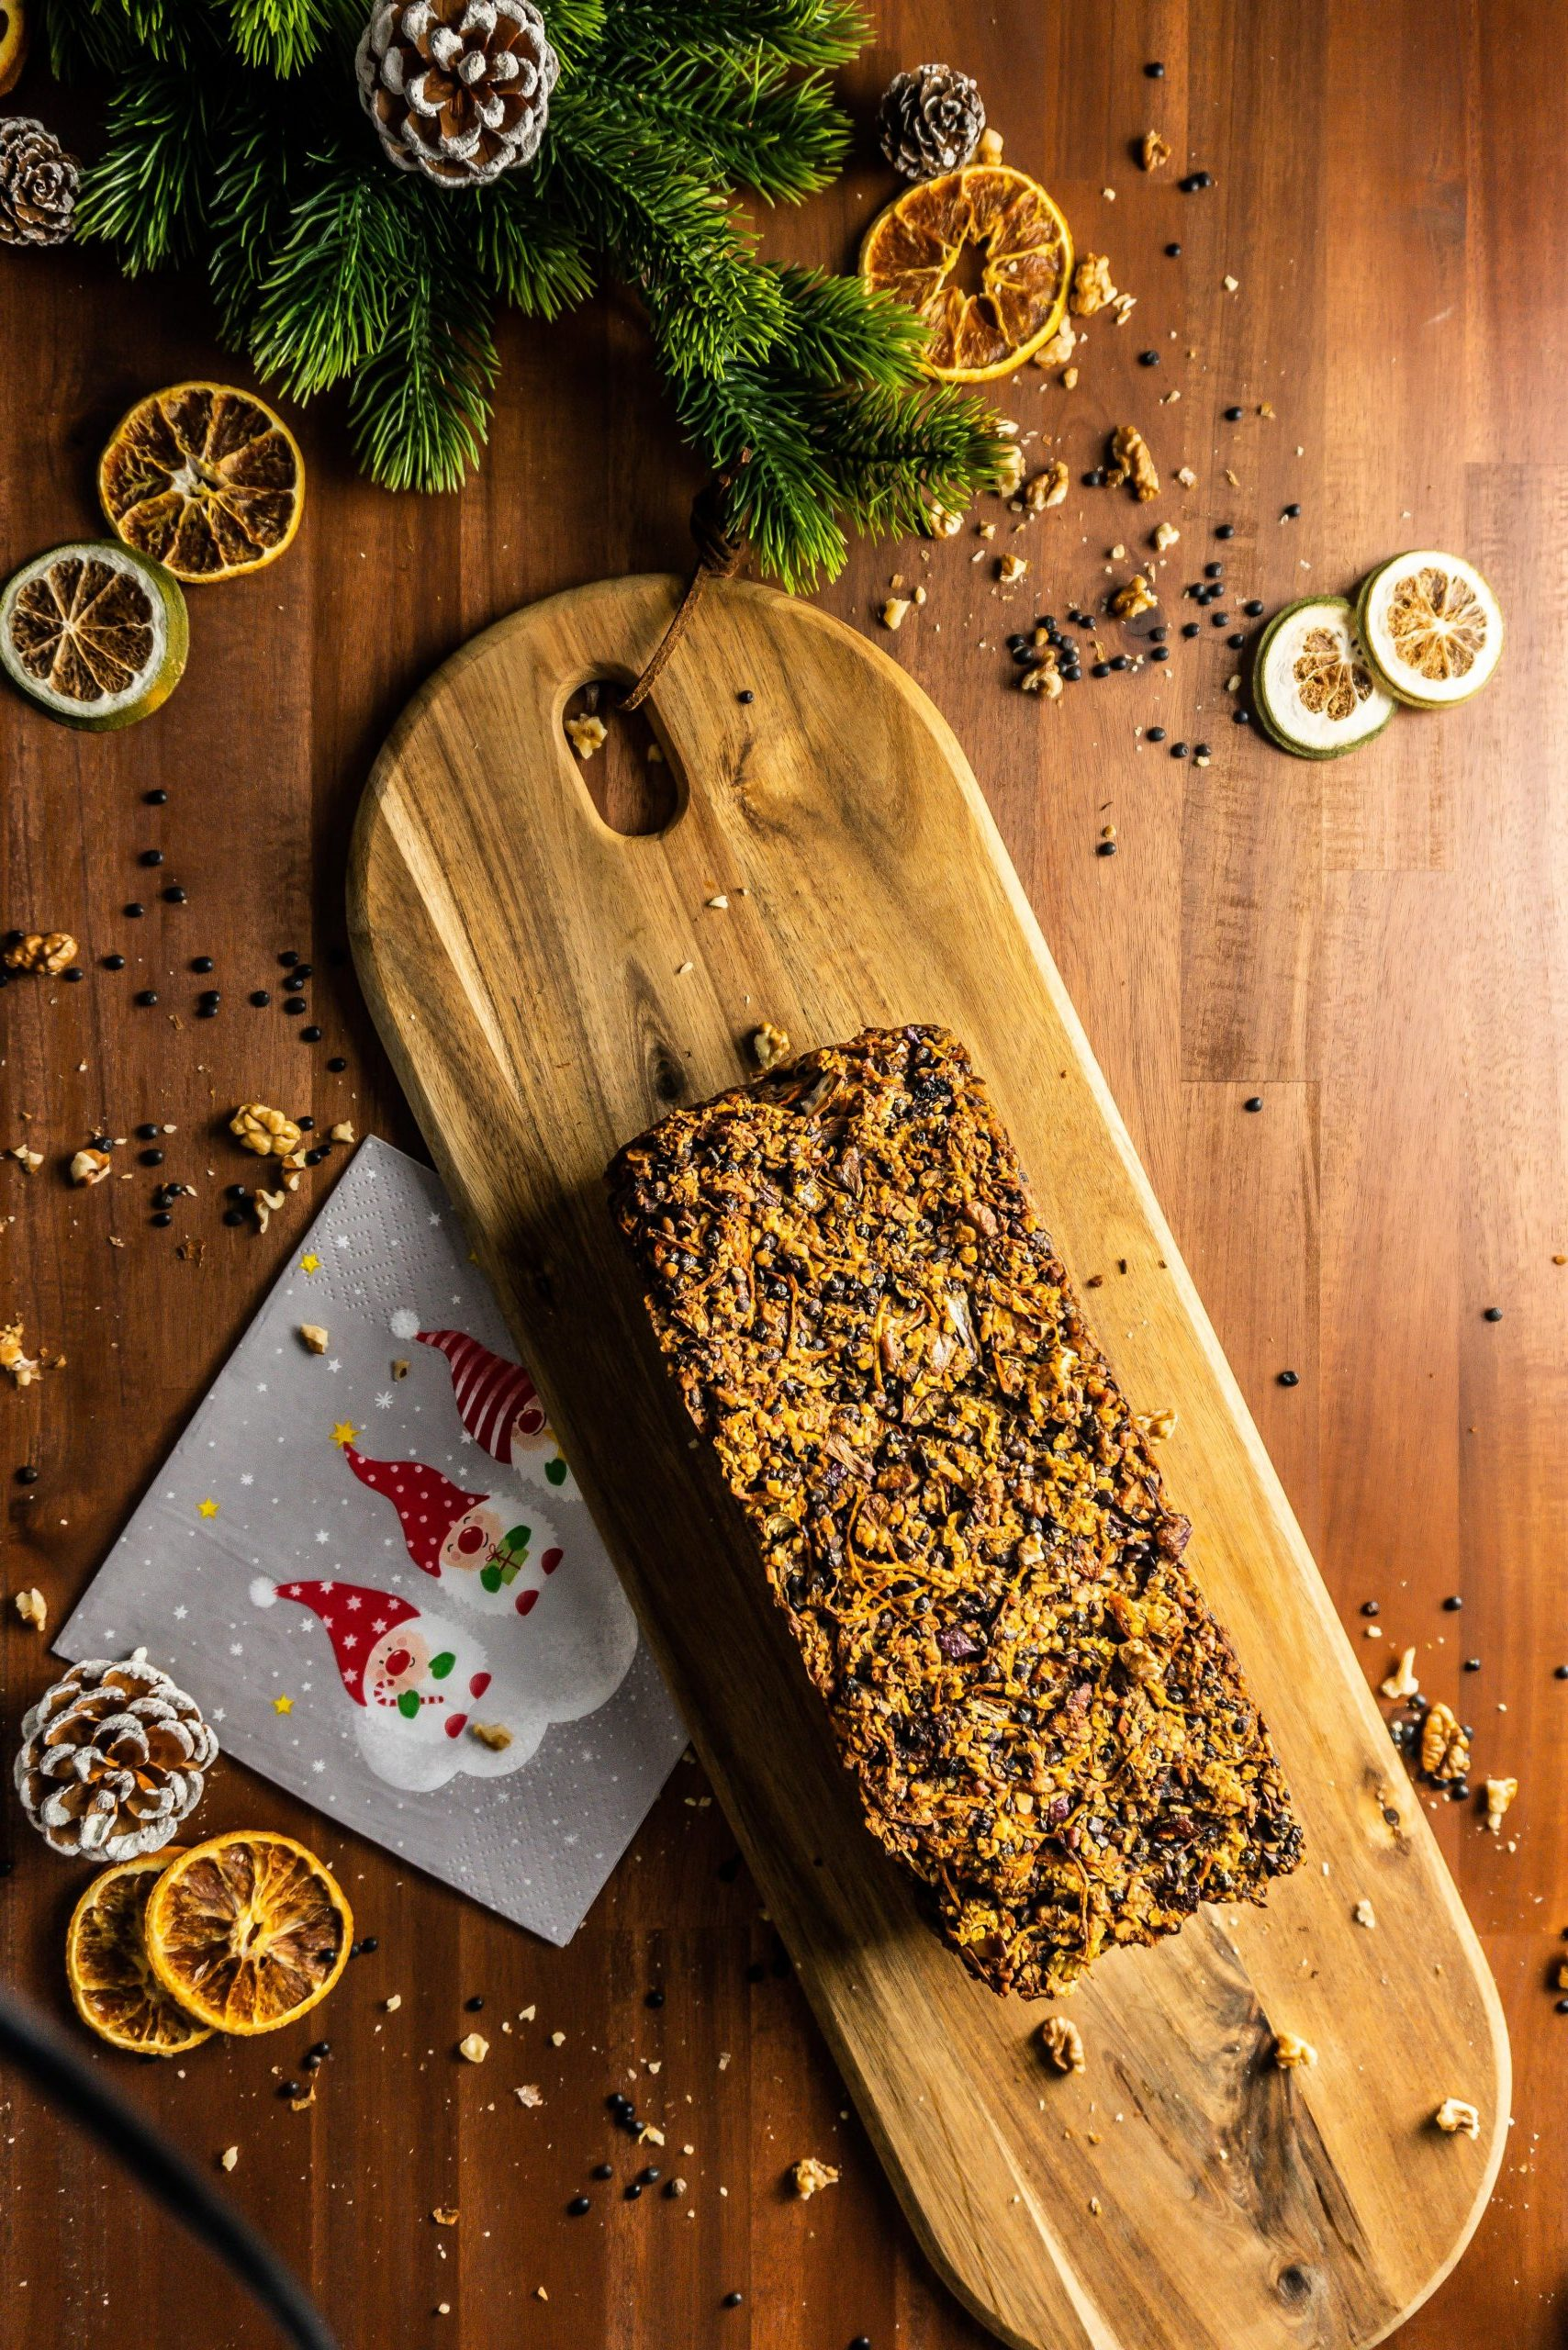 """Lentil Mushroom Walnut """"Meat"""" Loaf on a cutting board surrounded by Christmas napkins, dried orange slices, and lentil and walnut pieces"""